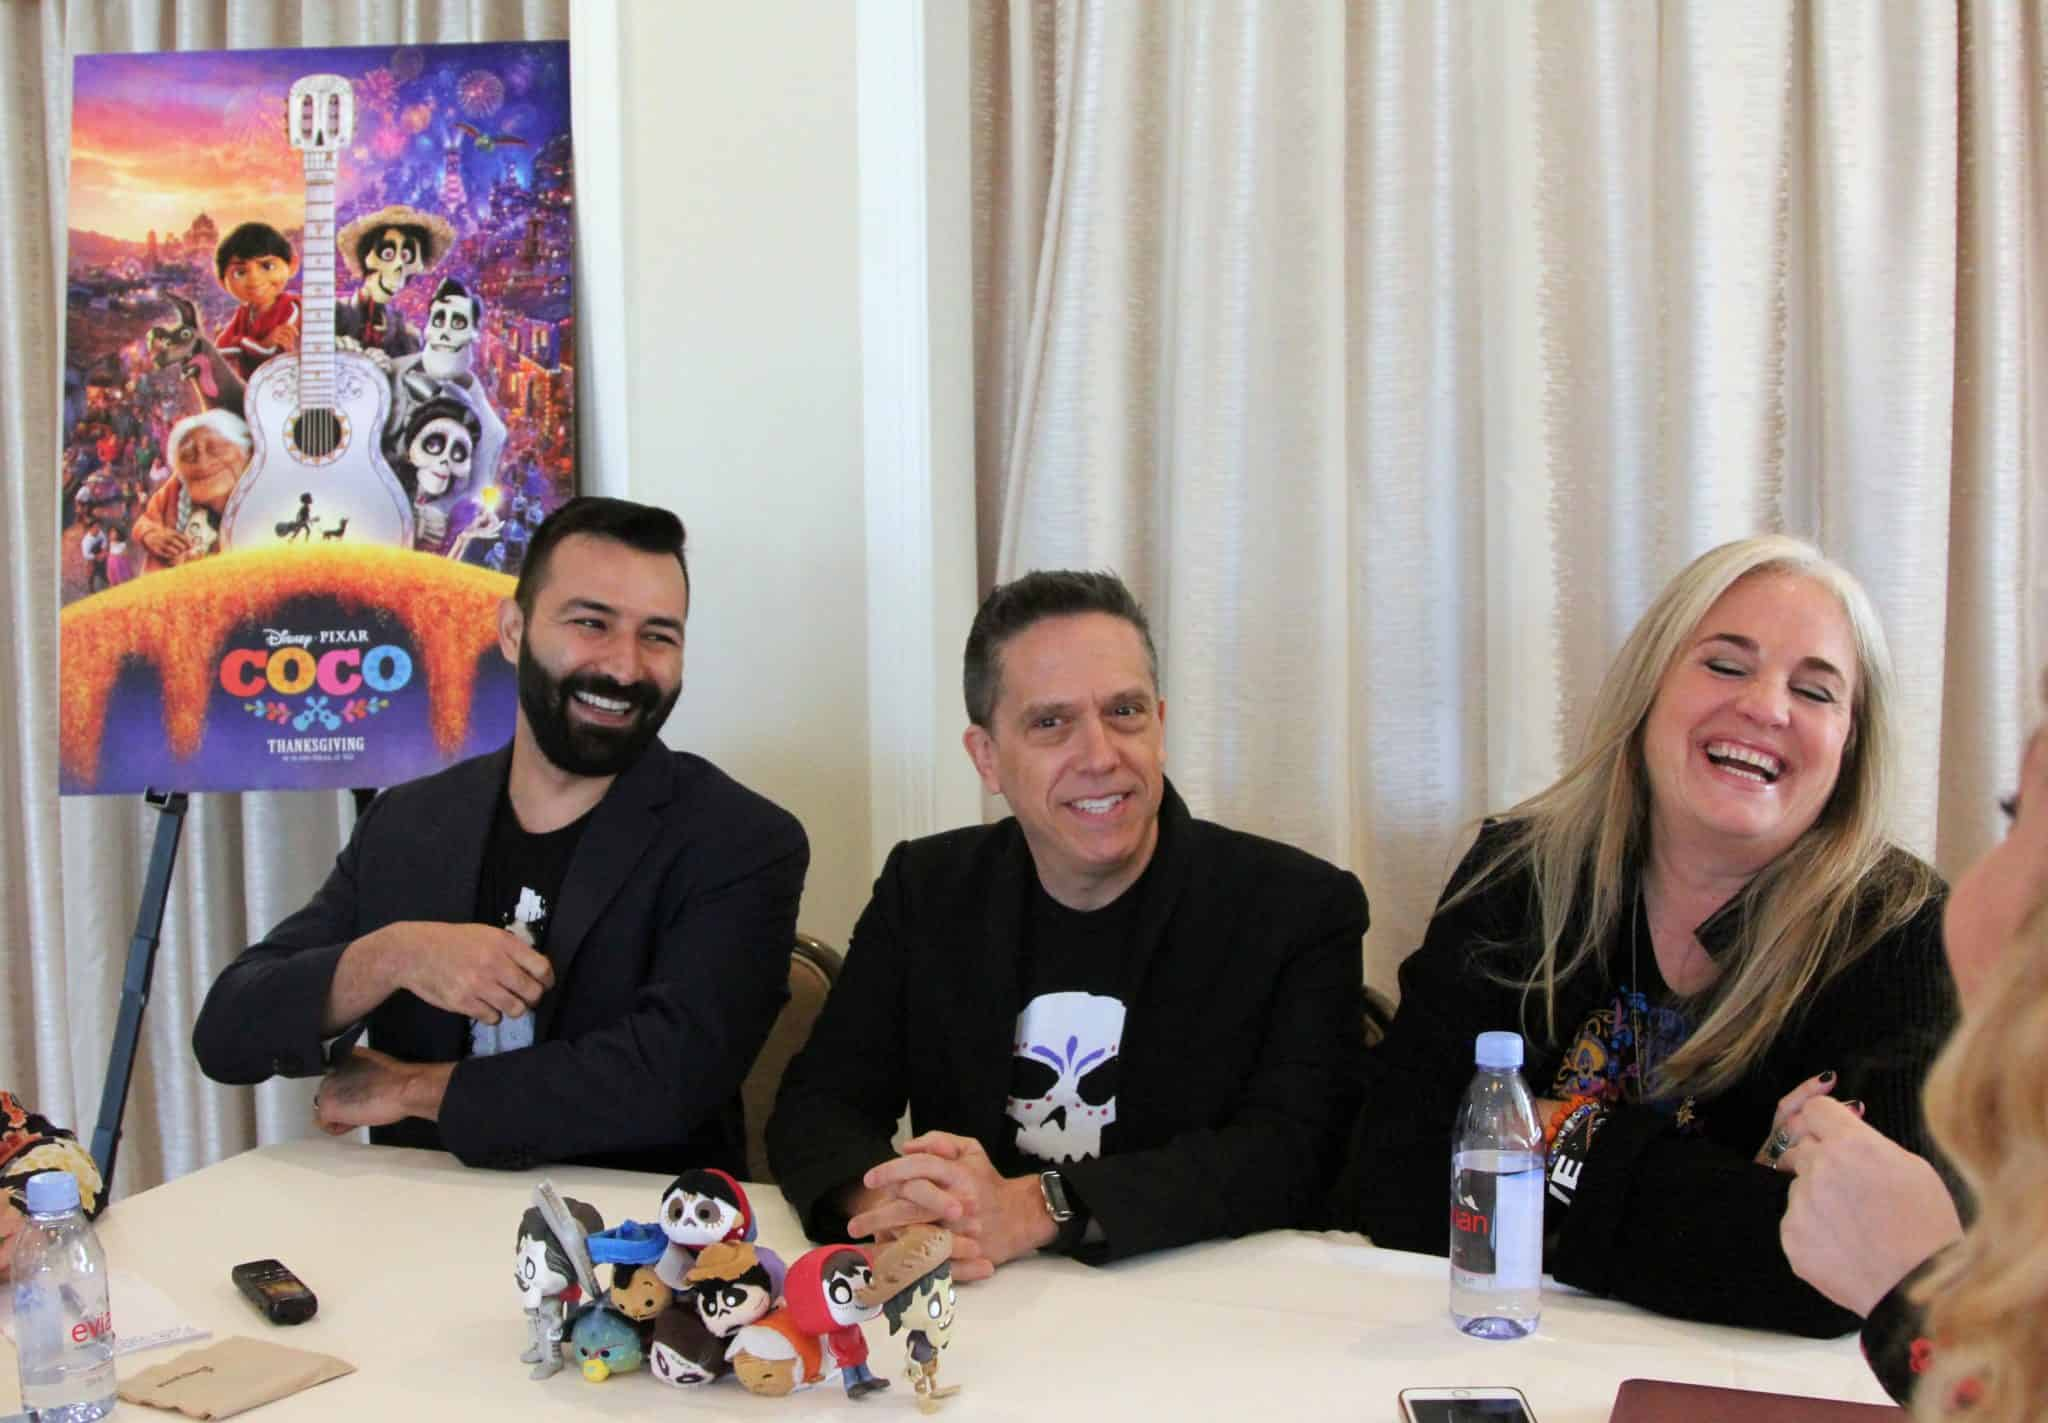 COCO Director Lee Unkrich, Writer & Co-Director Adrian Molina and Producer Darla K. Anderson Interview